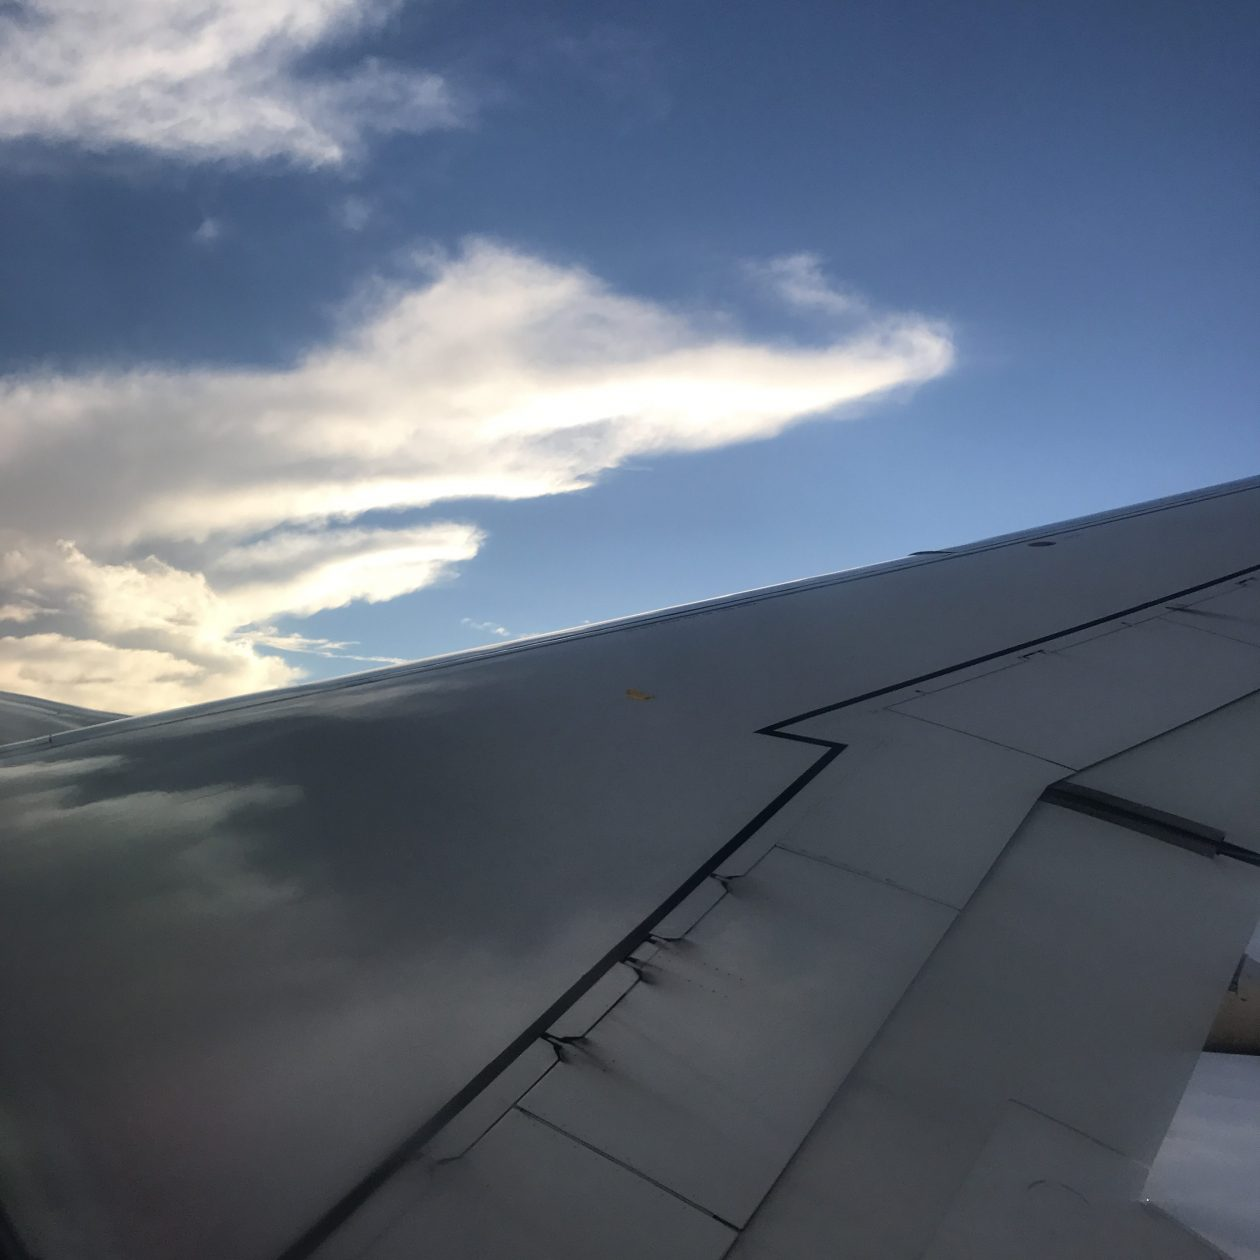 airplaneclouds